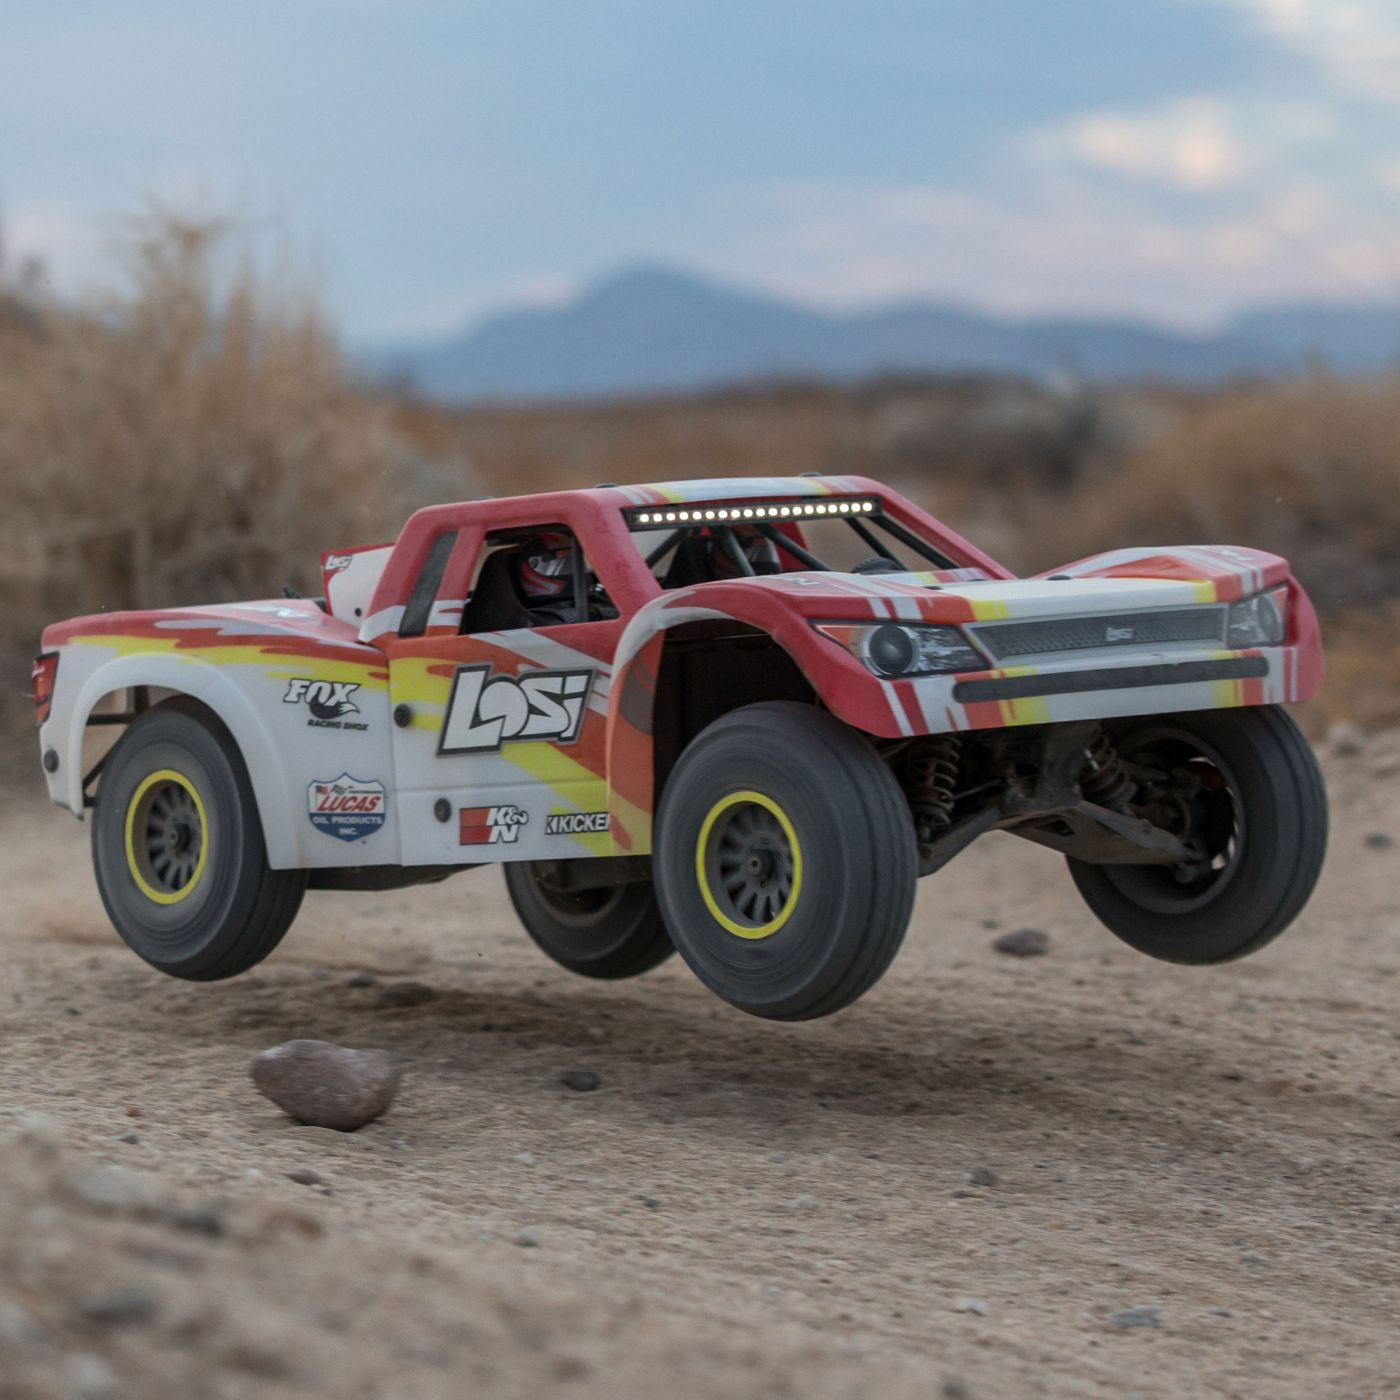 Losi Super Baja Rey Brushless 1/6 4WD Red RTR 3